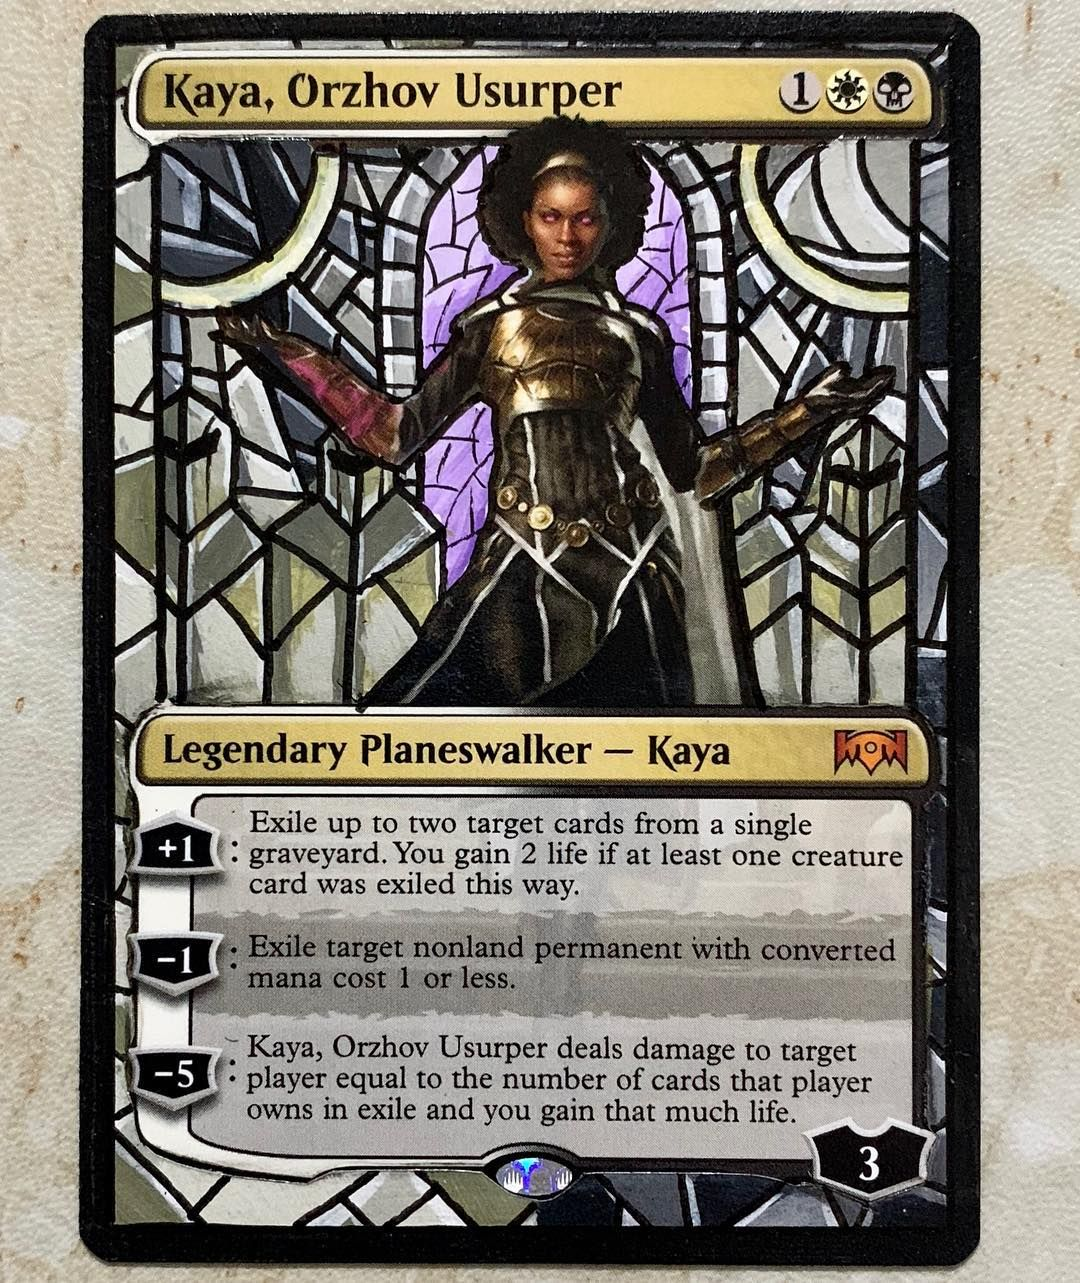 Gong Xi Fa Cai Greetings From Kaya Orzhov Usurper Believe What You See The Magic Of Mtg Beauti Mtg Altered Art Magic The Gathering Cards Magic The Gathering The gathering (@wizards_magic) в instagram: gong xi fa cai greetings from kaya